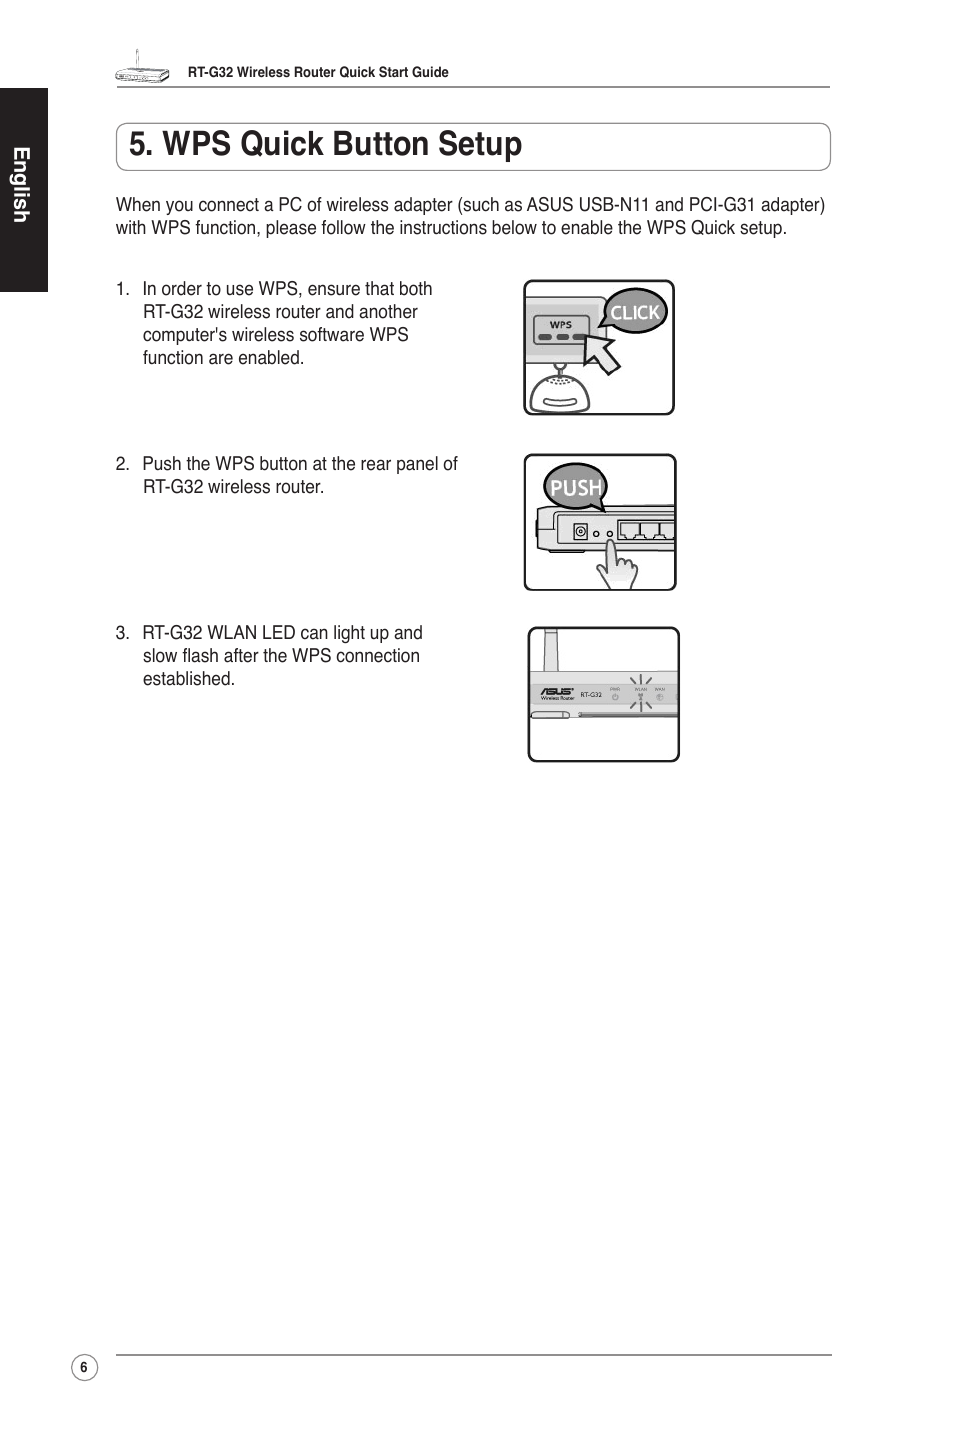 Wps quick button setup | Asus RT-G32 User Manual | Page 7 / 73